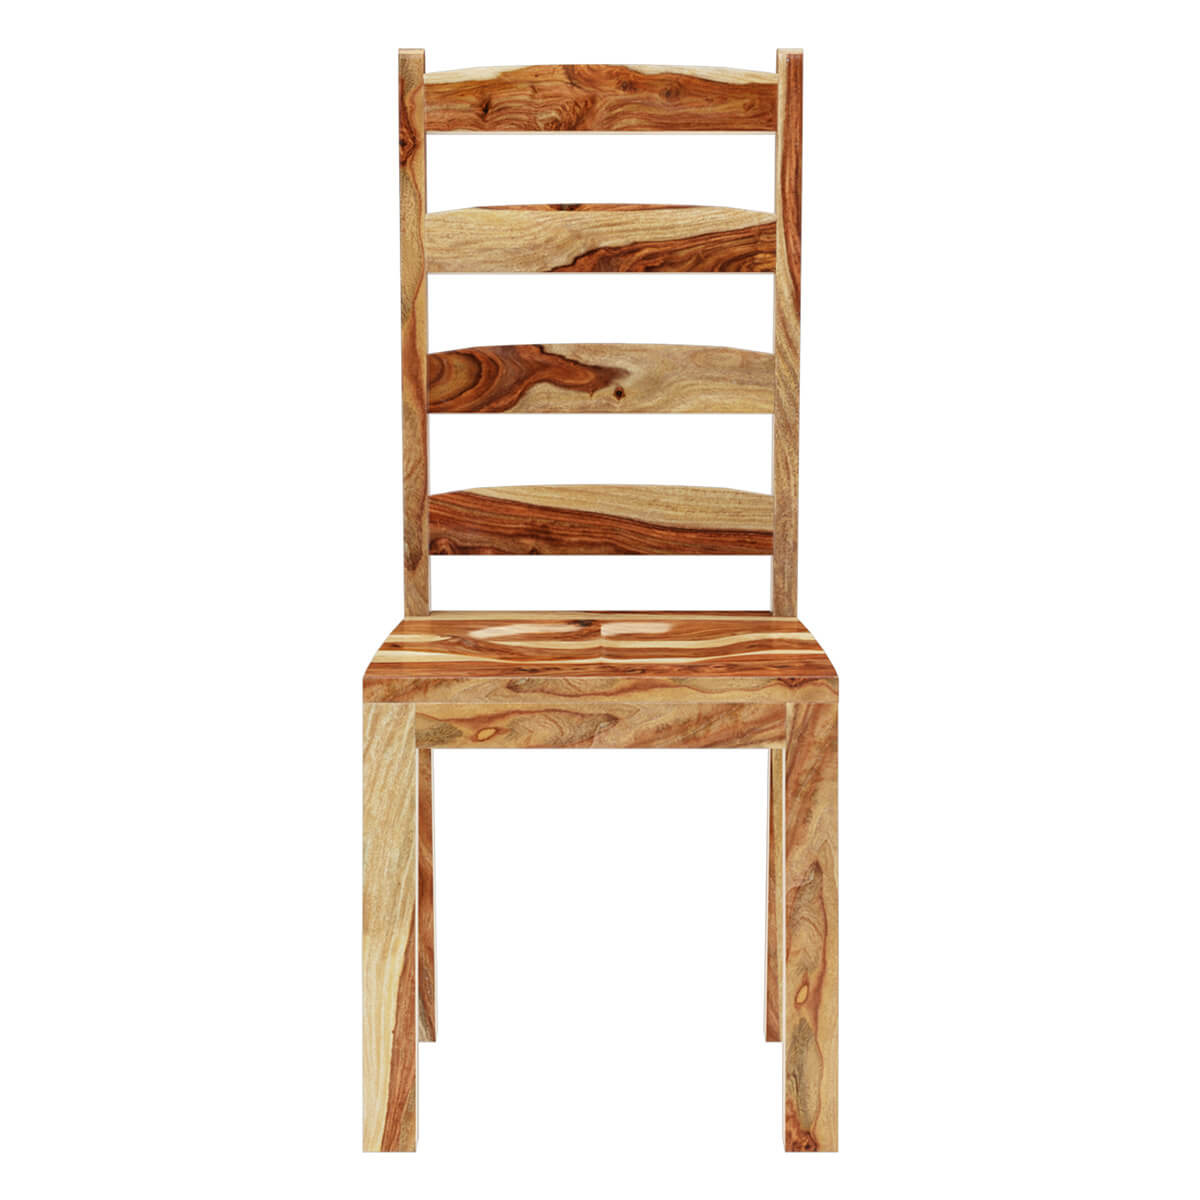 Oklahoma Rustic Solid Wood Ladder Back Chairs 2pc Set